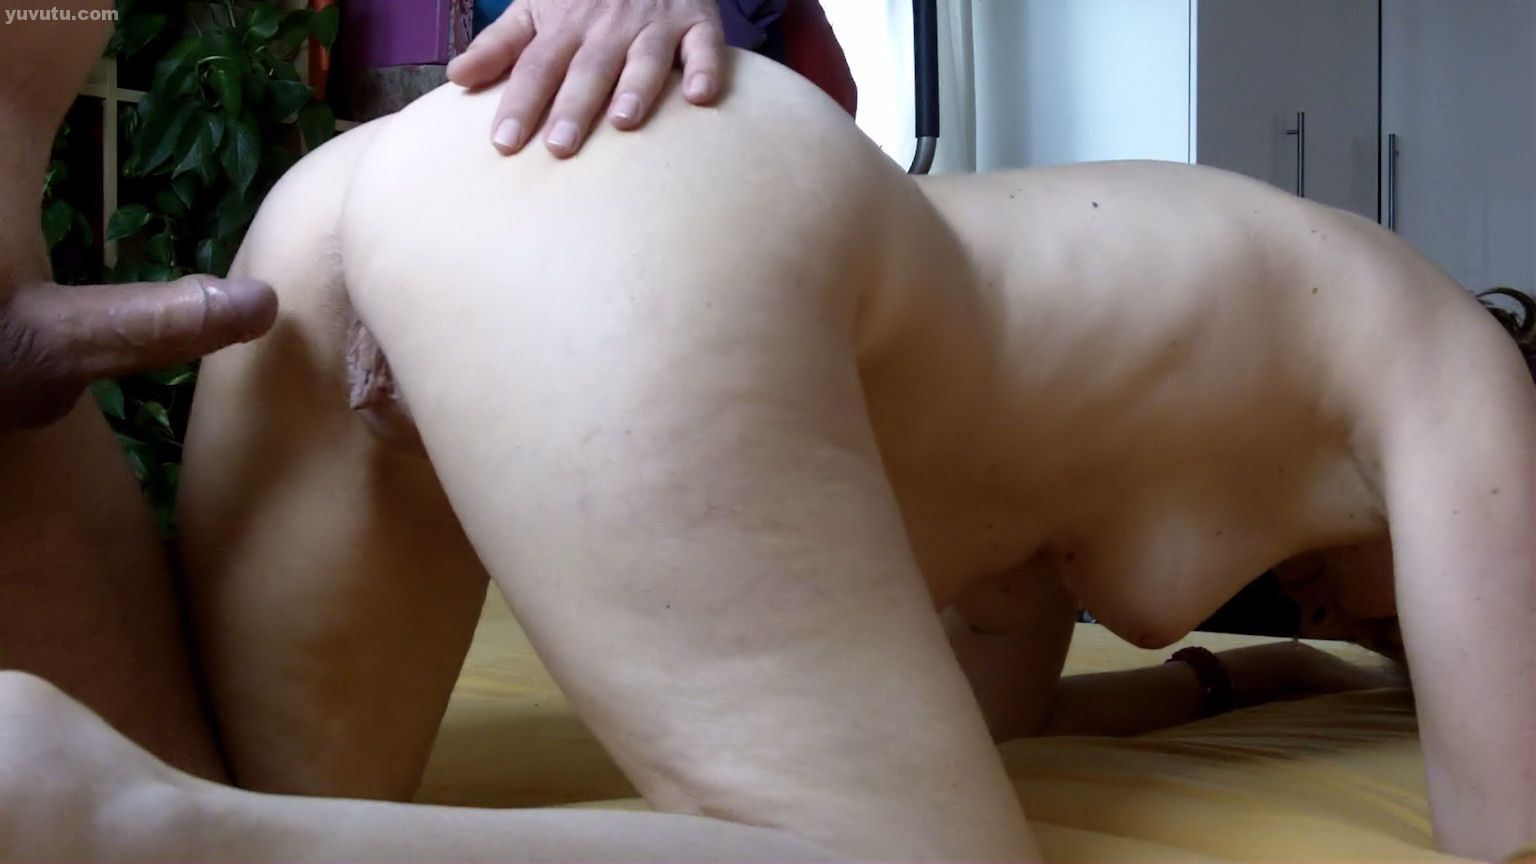 Moana and loverboy - fucking porn pics - Black On Yuvutu Homemade Amateur  Porn Movies And XXX Sex Videos